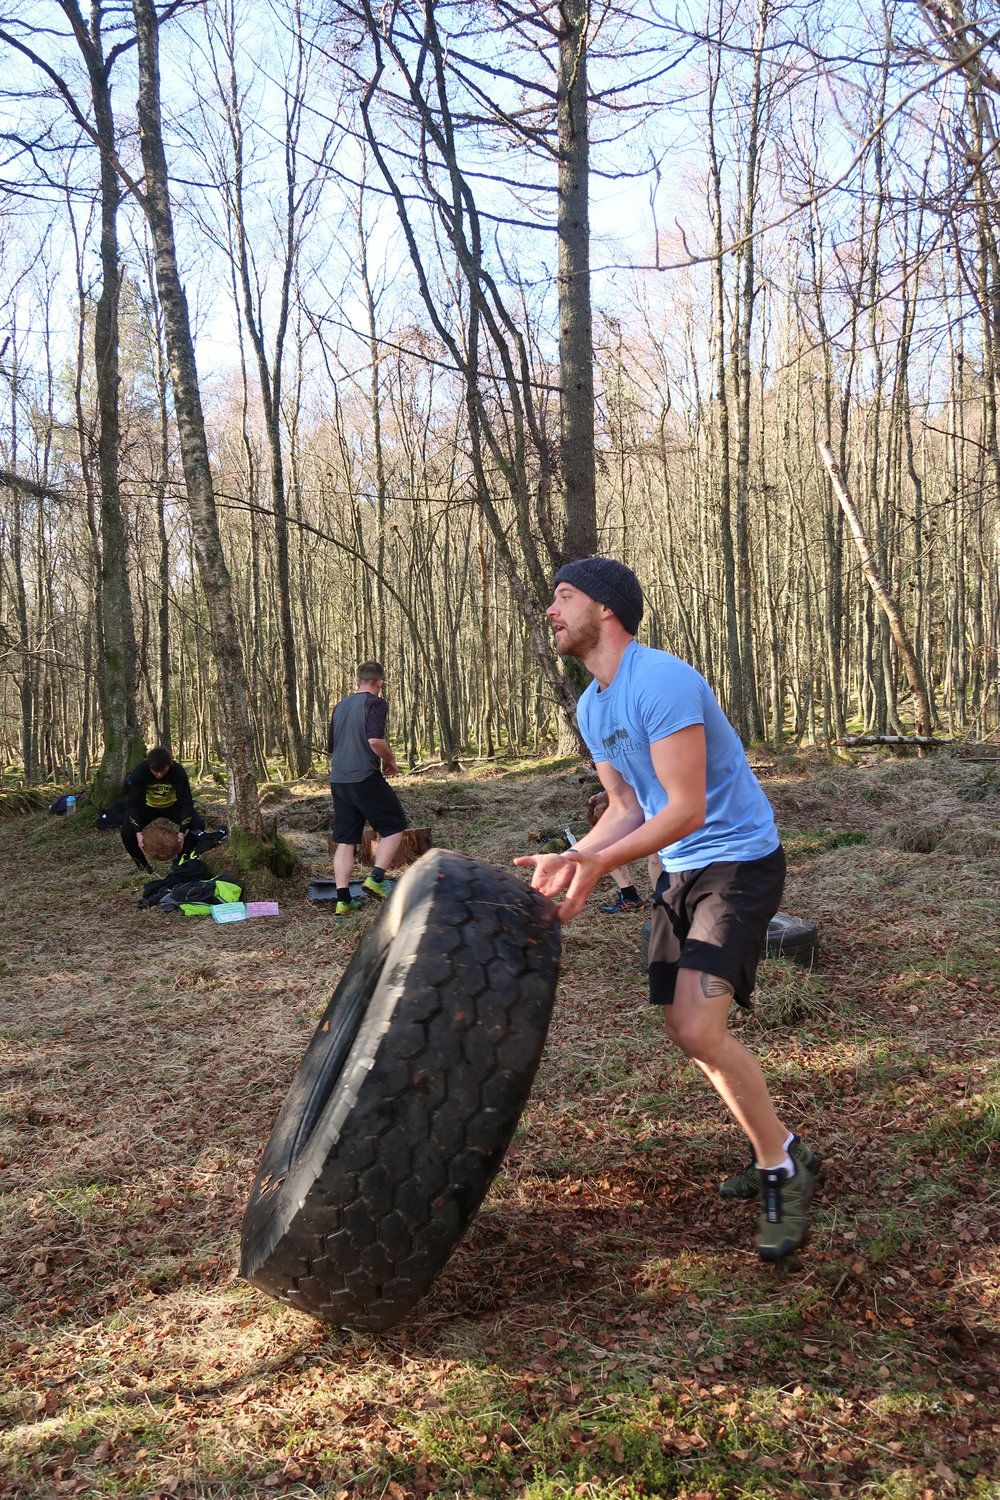 Lewis joined for his first session and smashed the tyre flips!